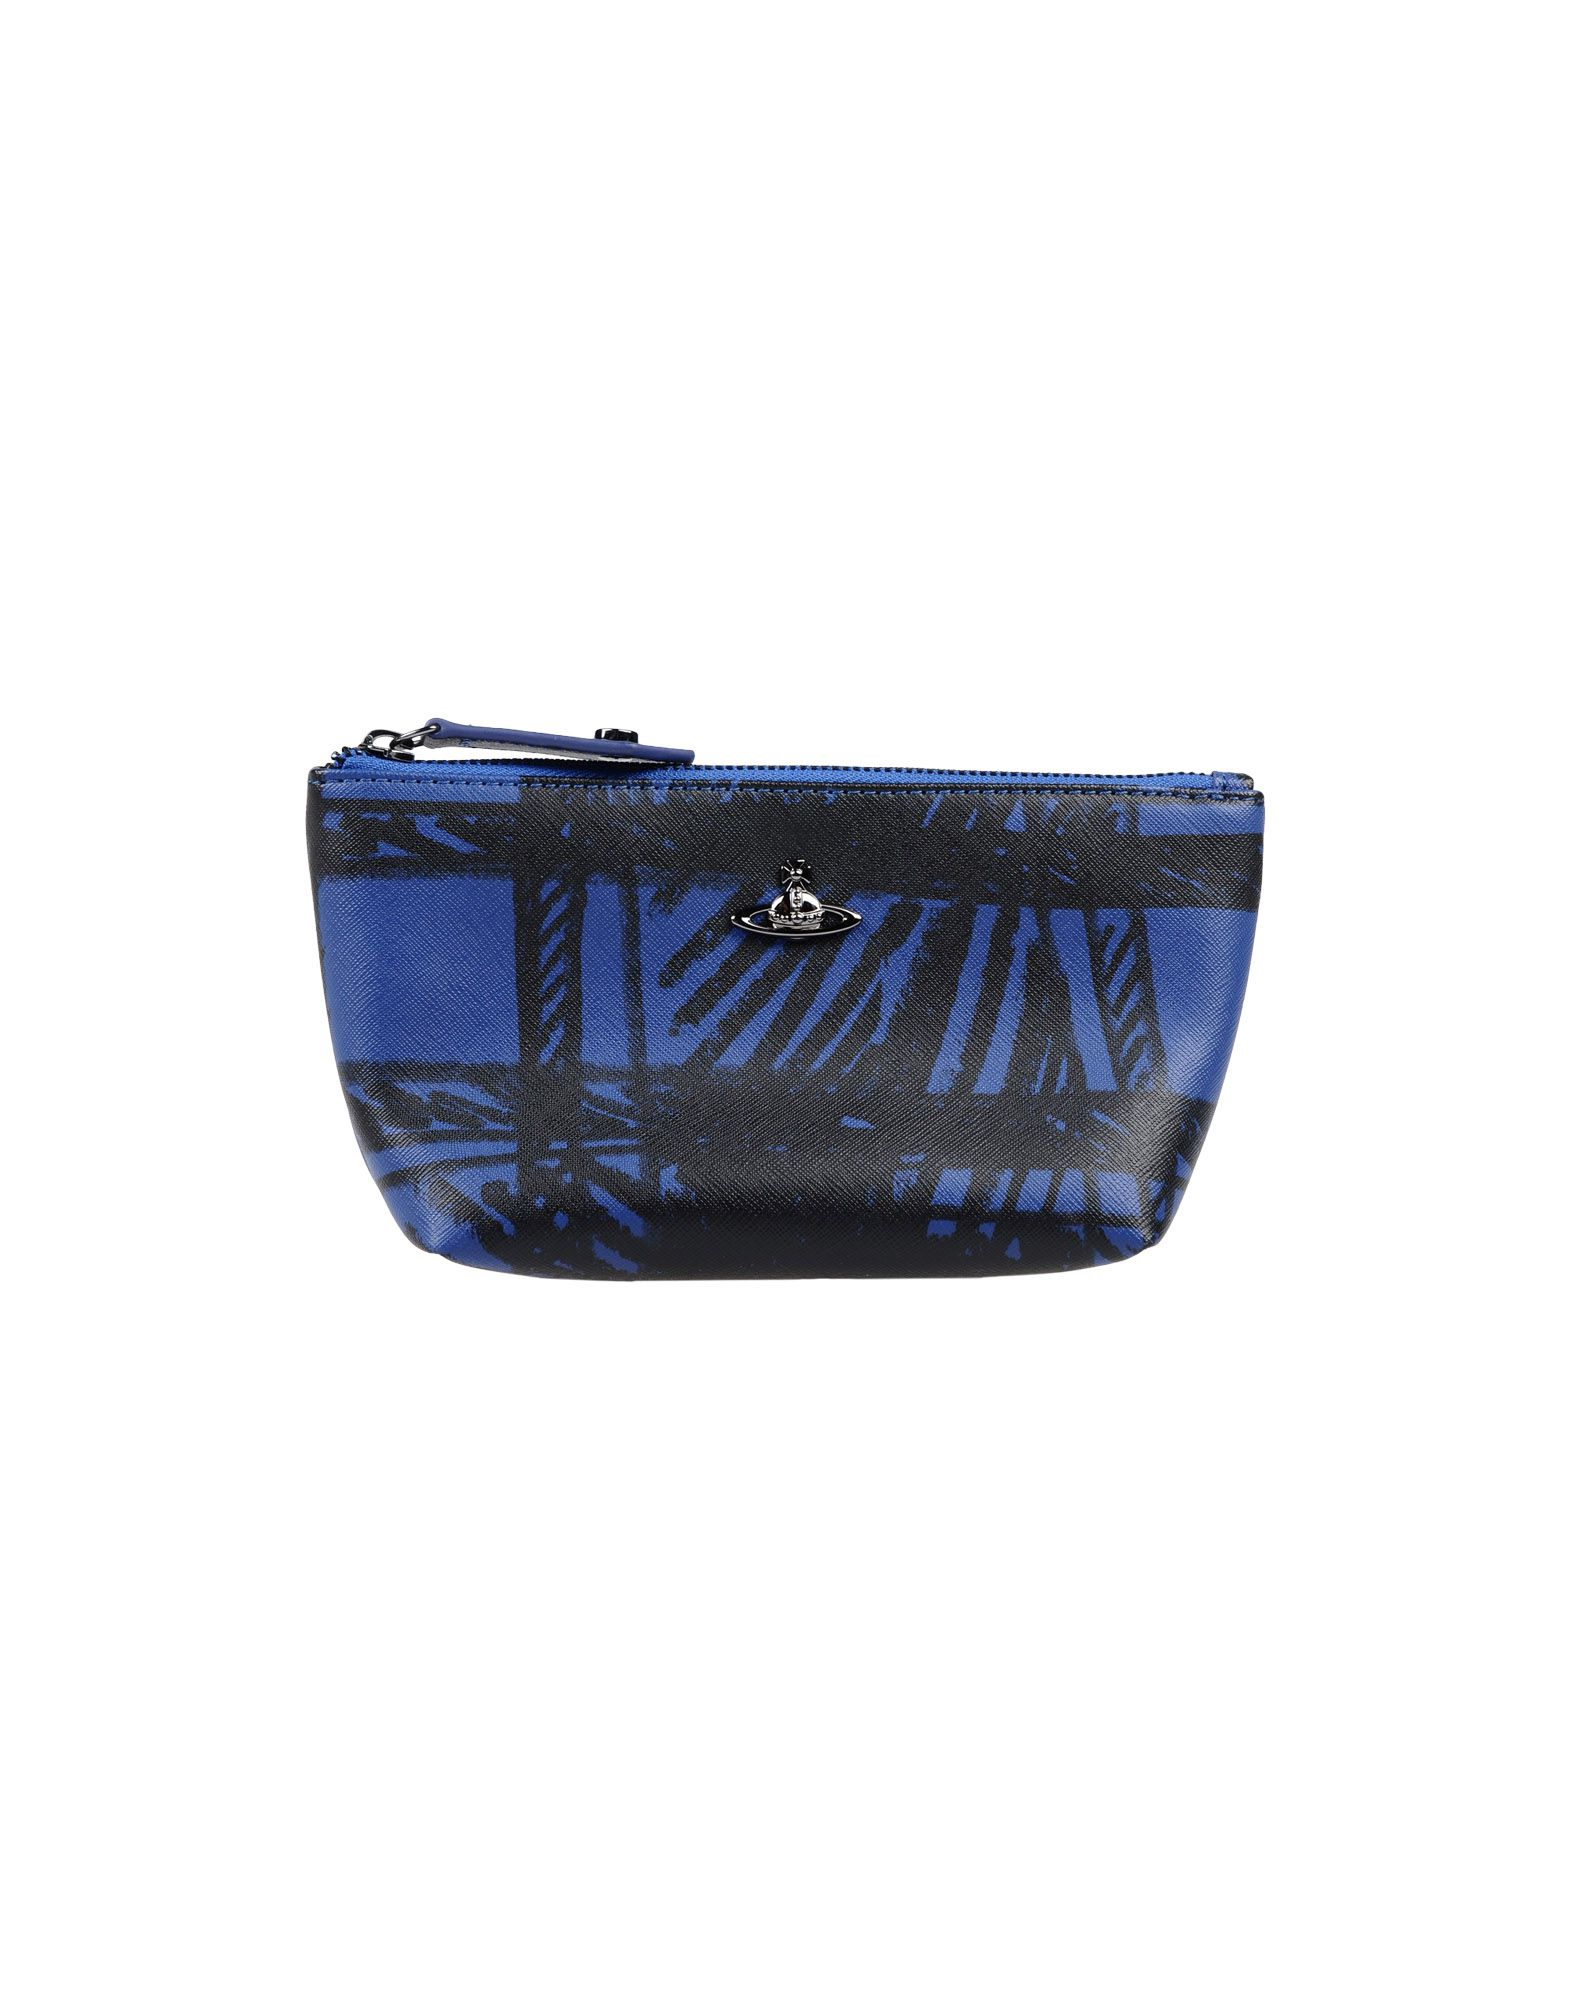 VIVIENNE WESTWOOD ANGLOMANIA Beauty case